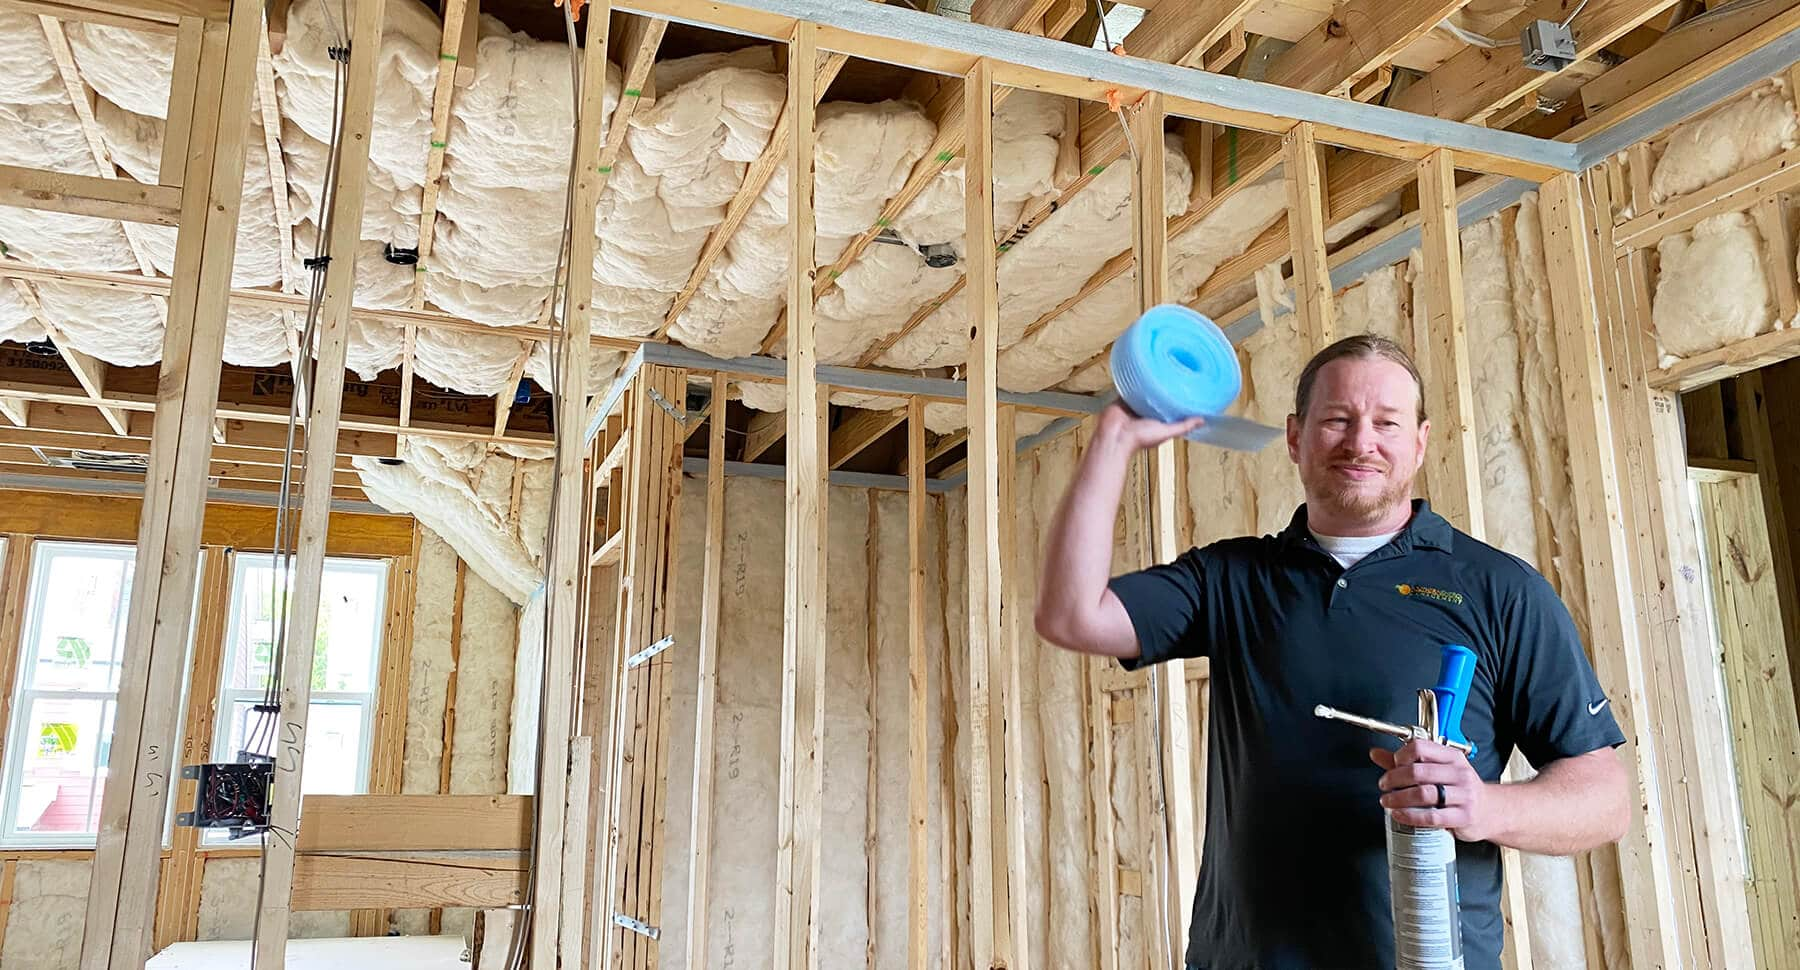 Matt, building performance expert, from Southern Energy Management holding sill seal and foam gasketing material on site for wall top air sealing